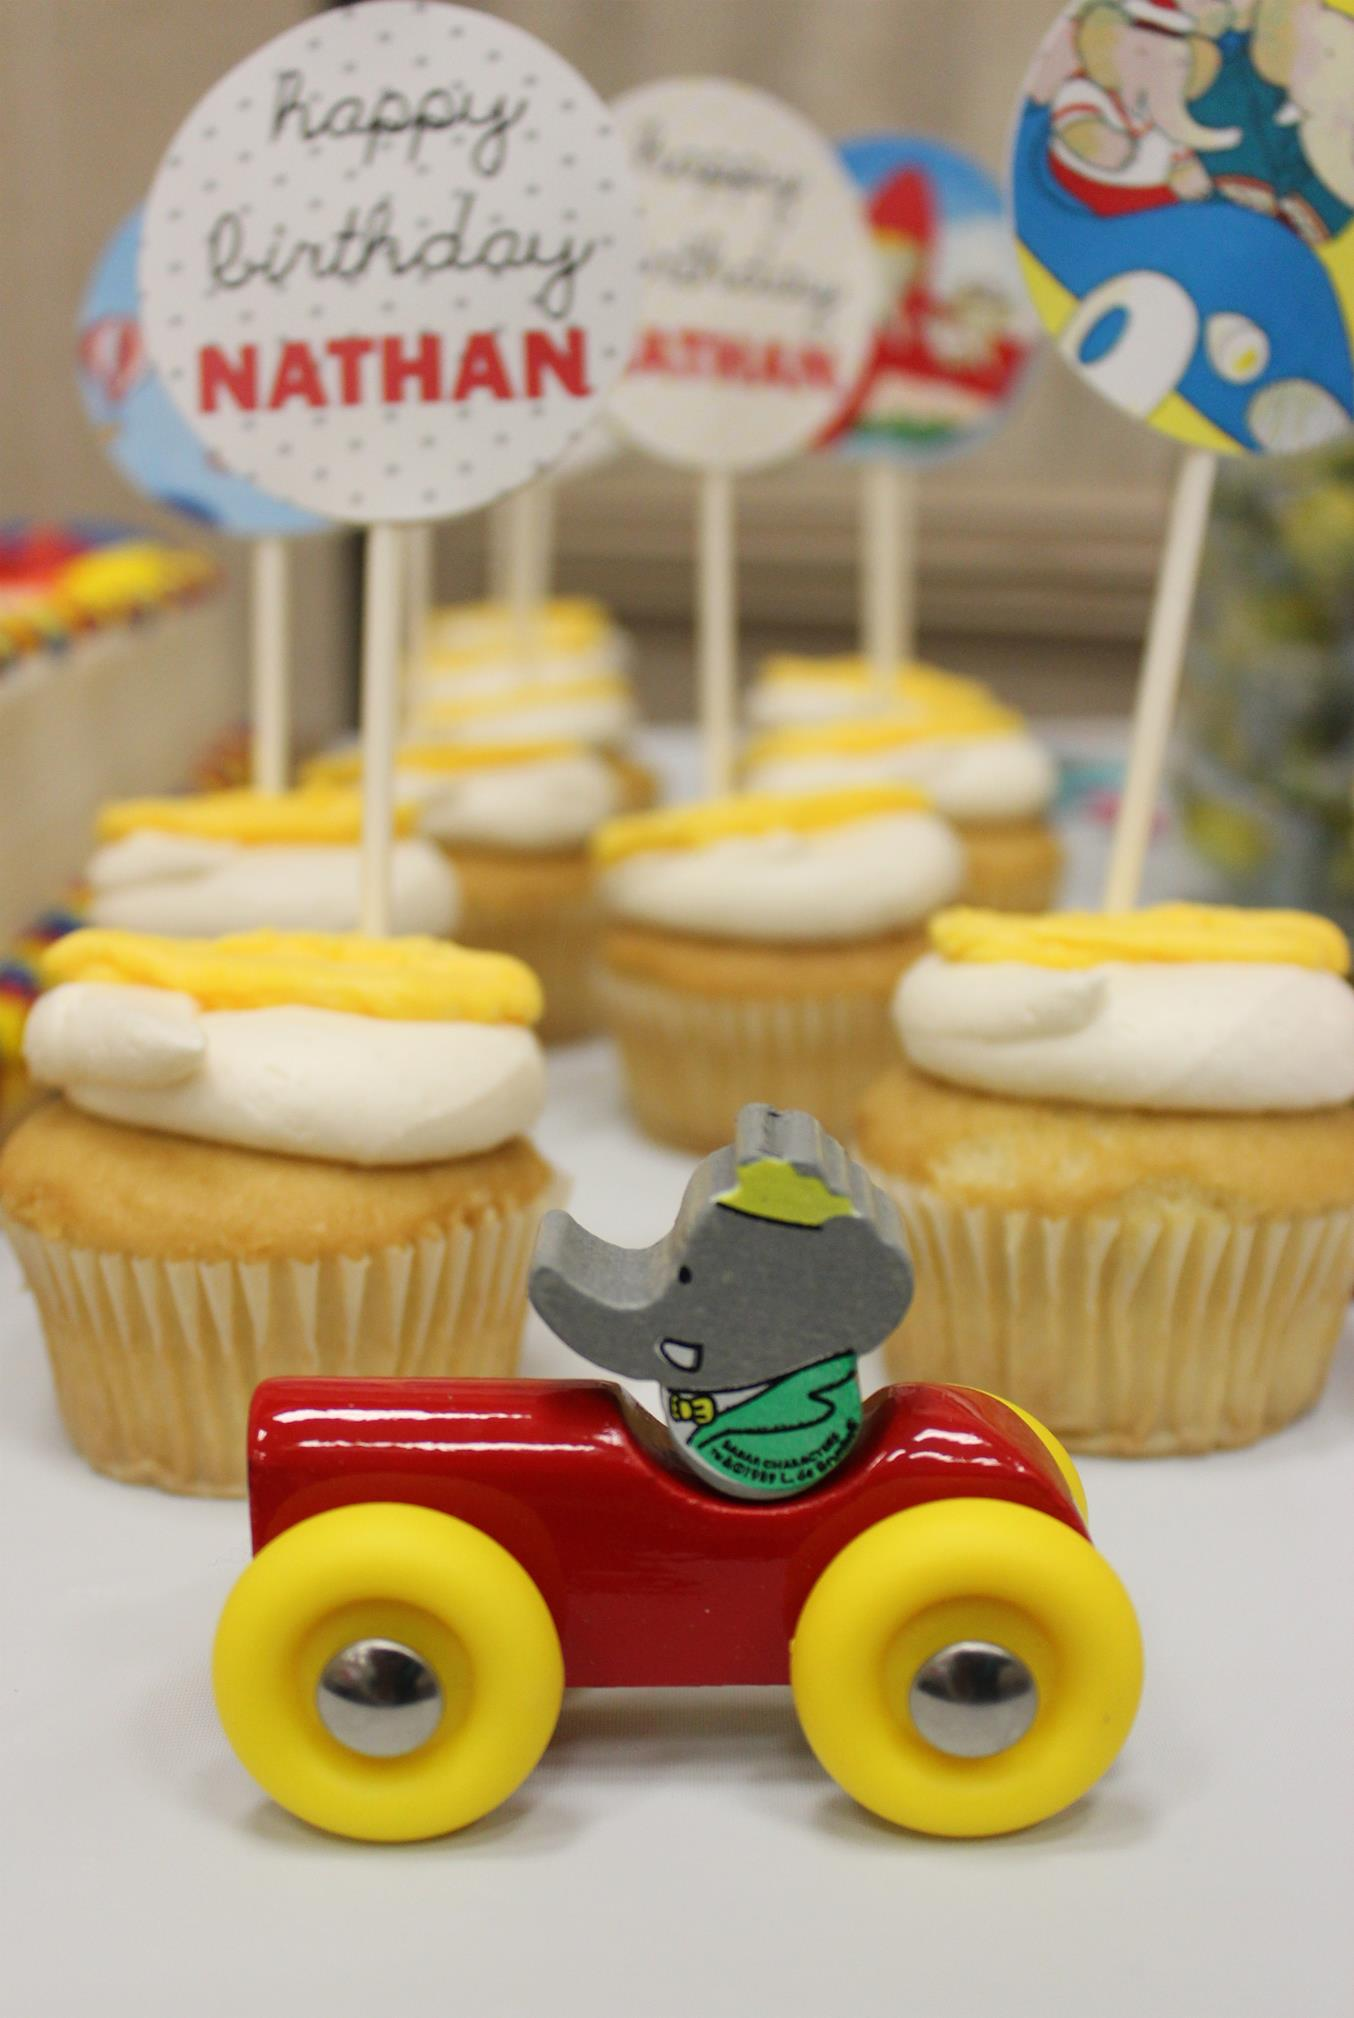 Nathan's Vintage Babar Birthday Party!